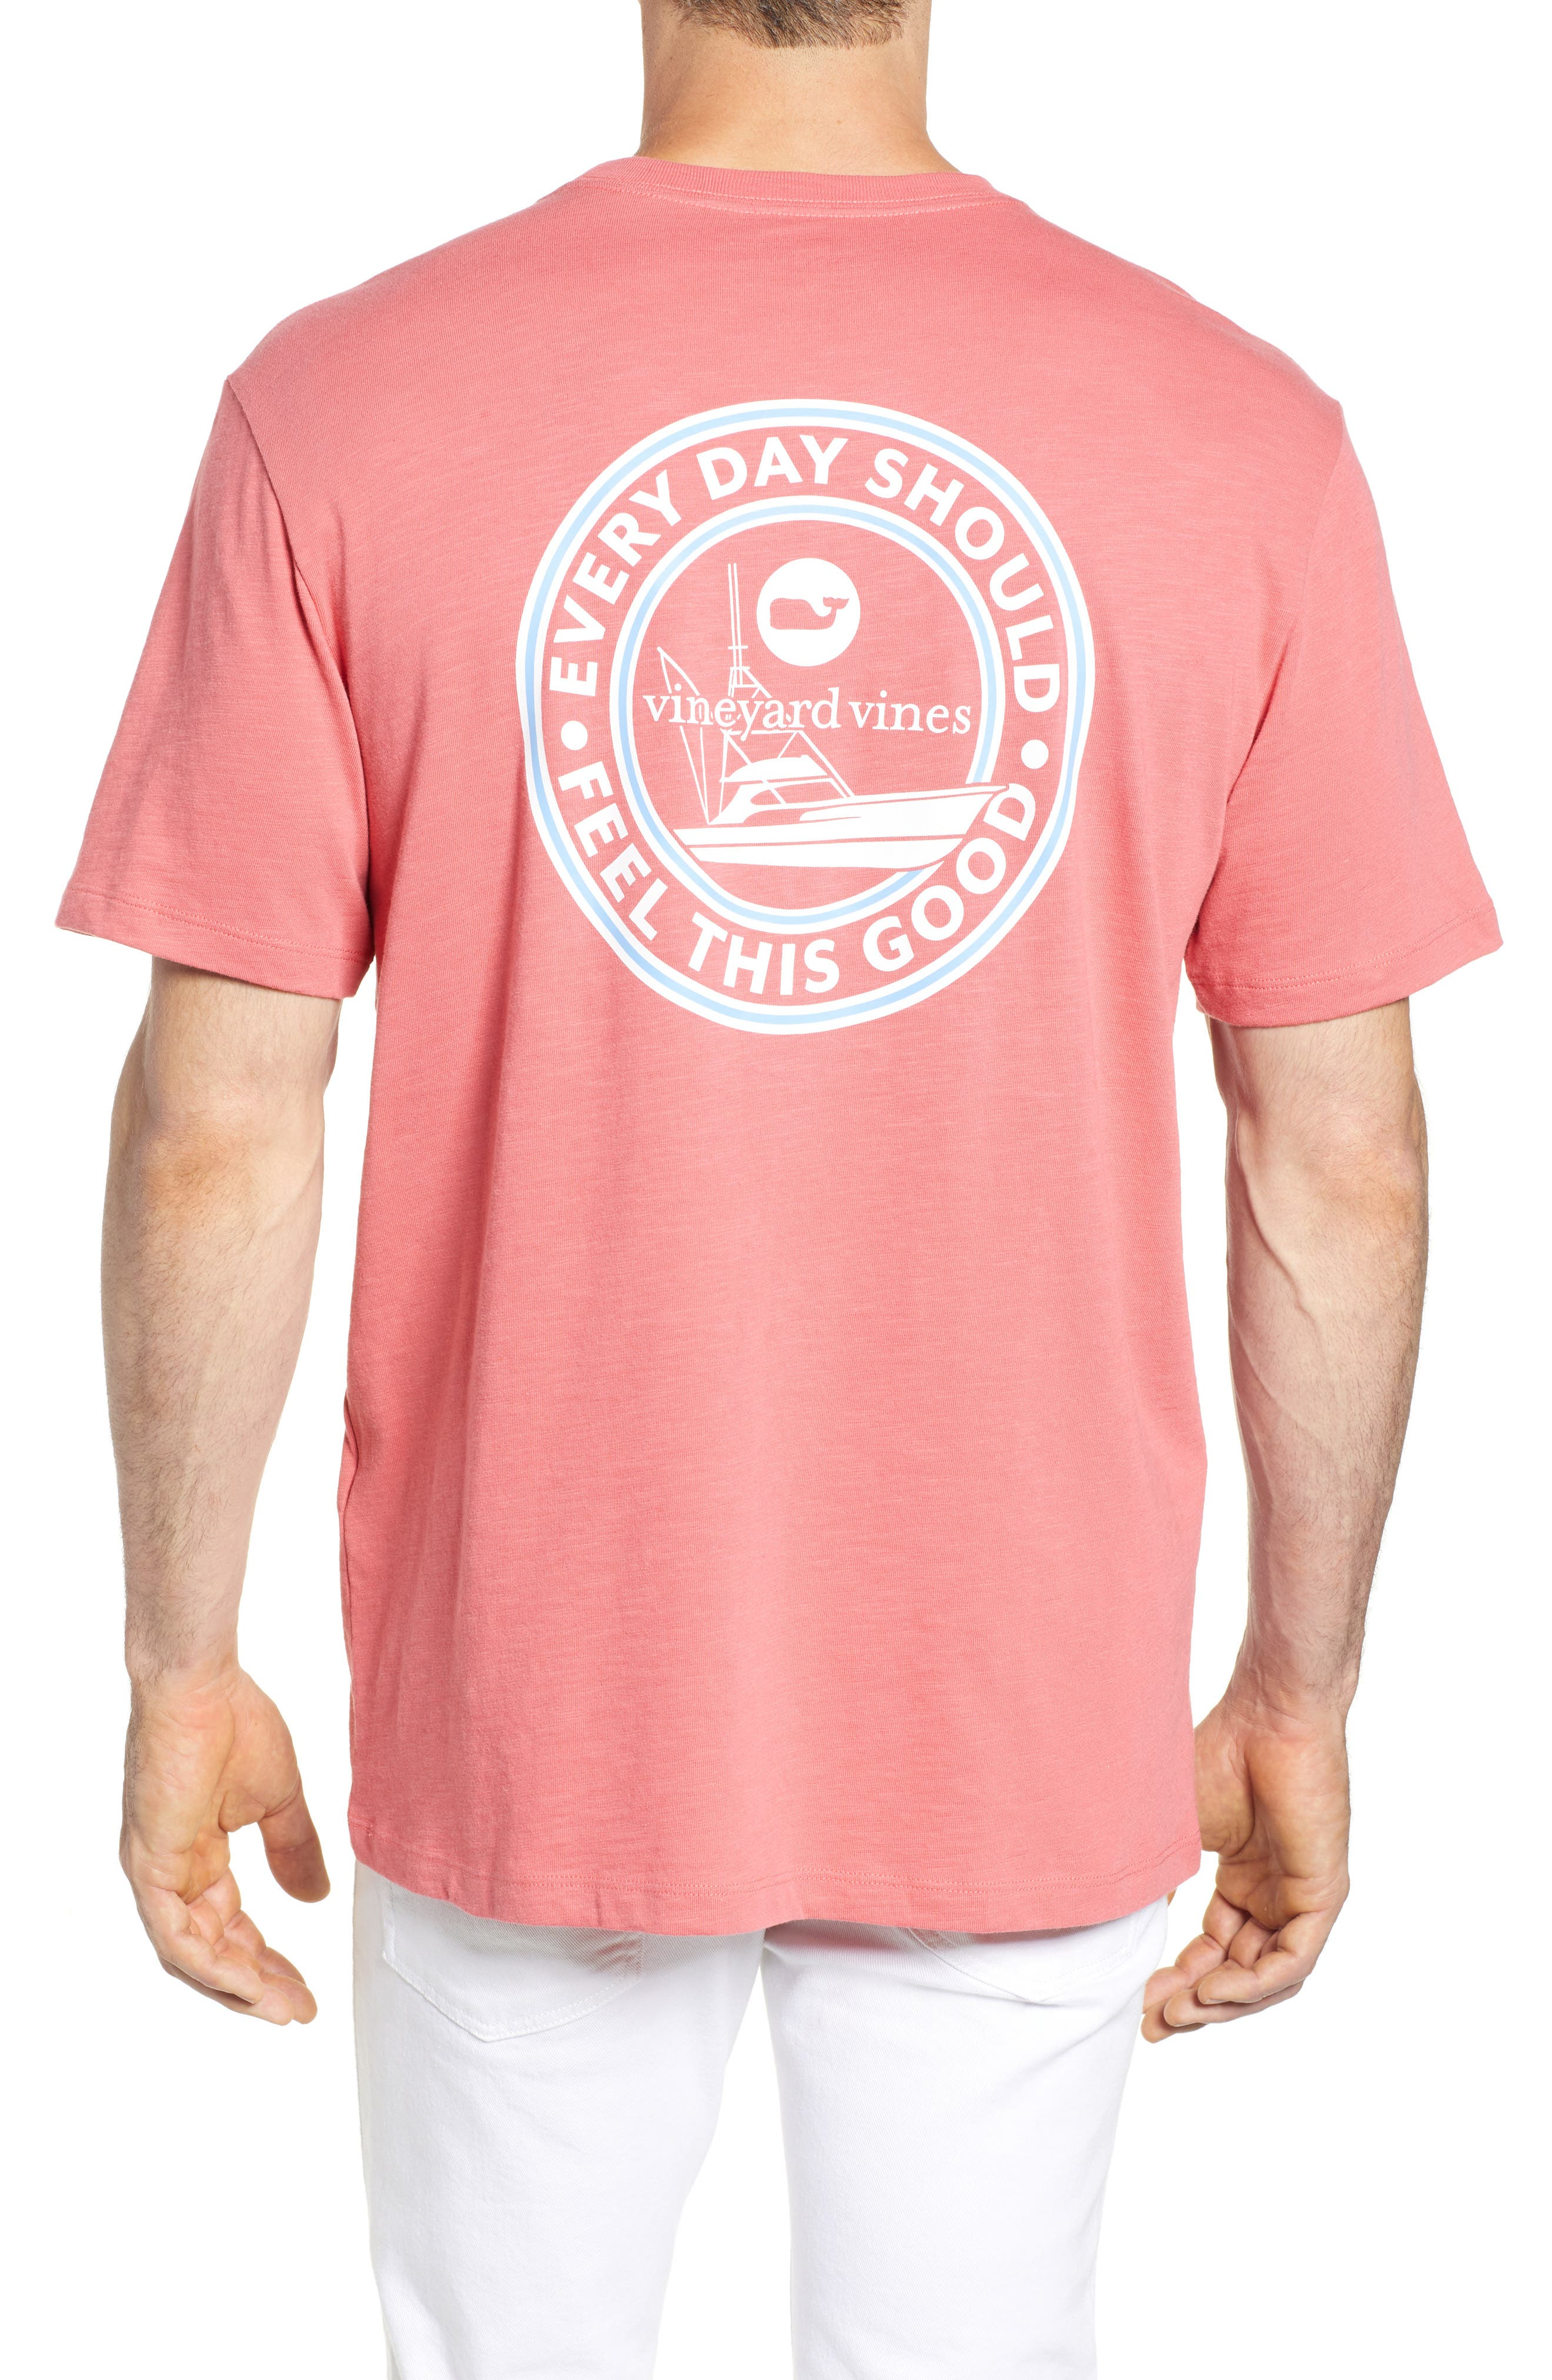 Every Day Should Feel This Good Pocket T-Shirt,                             Alternate thumbnail 2, color,